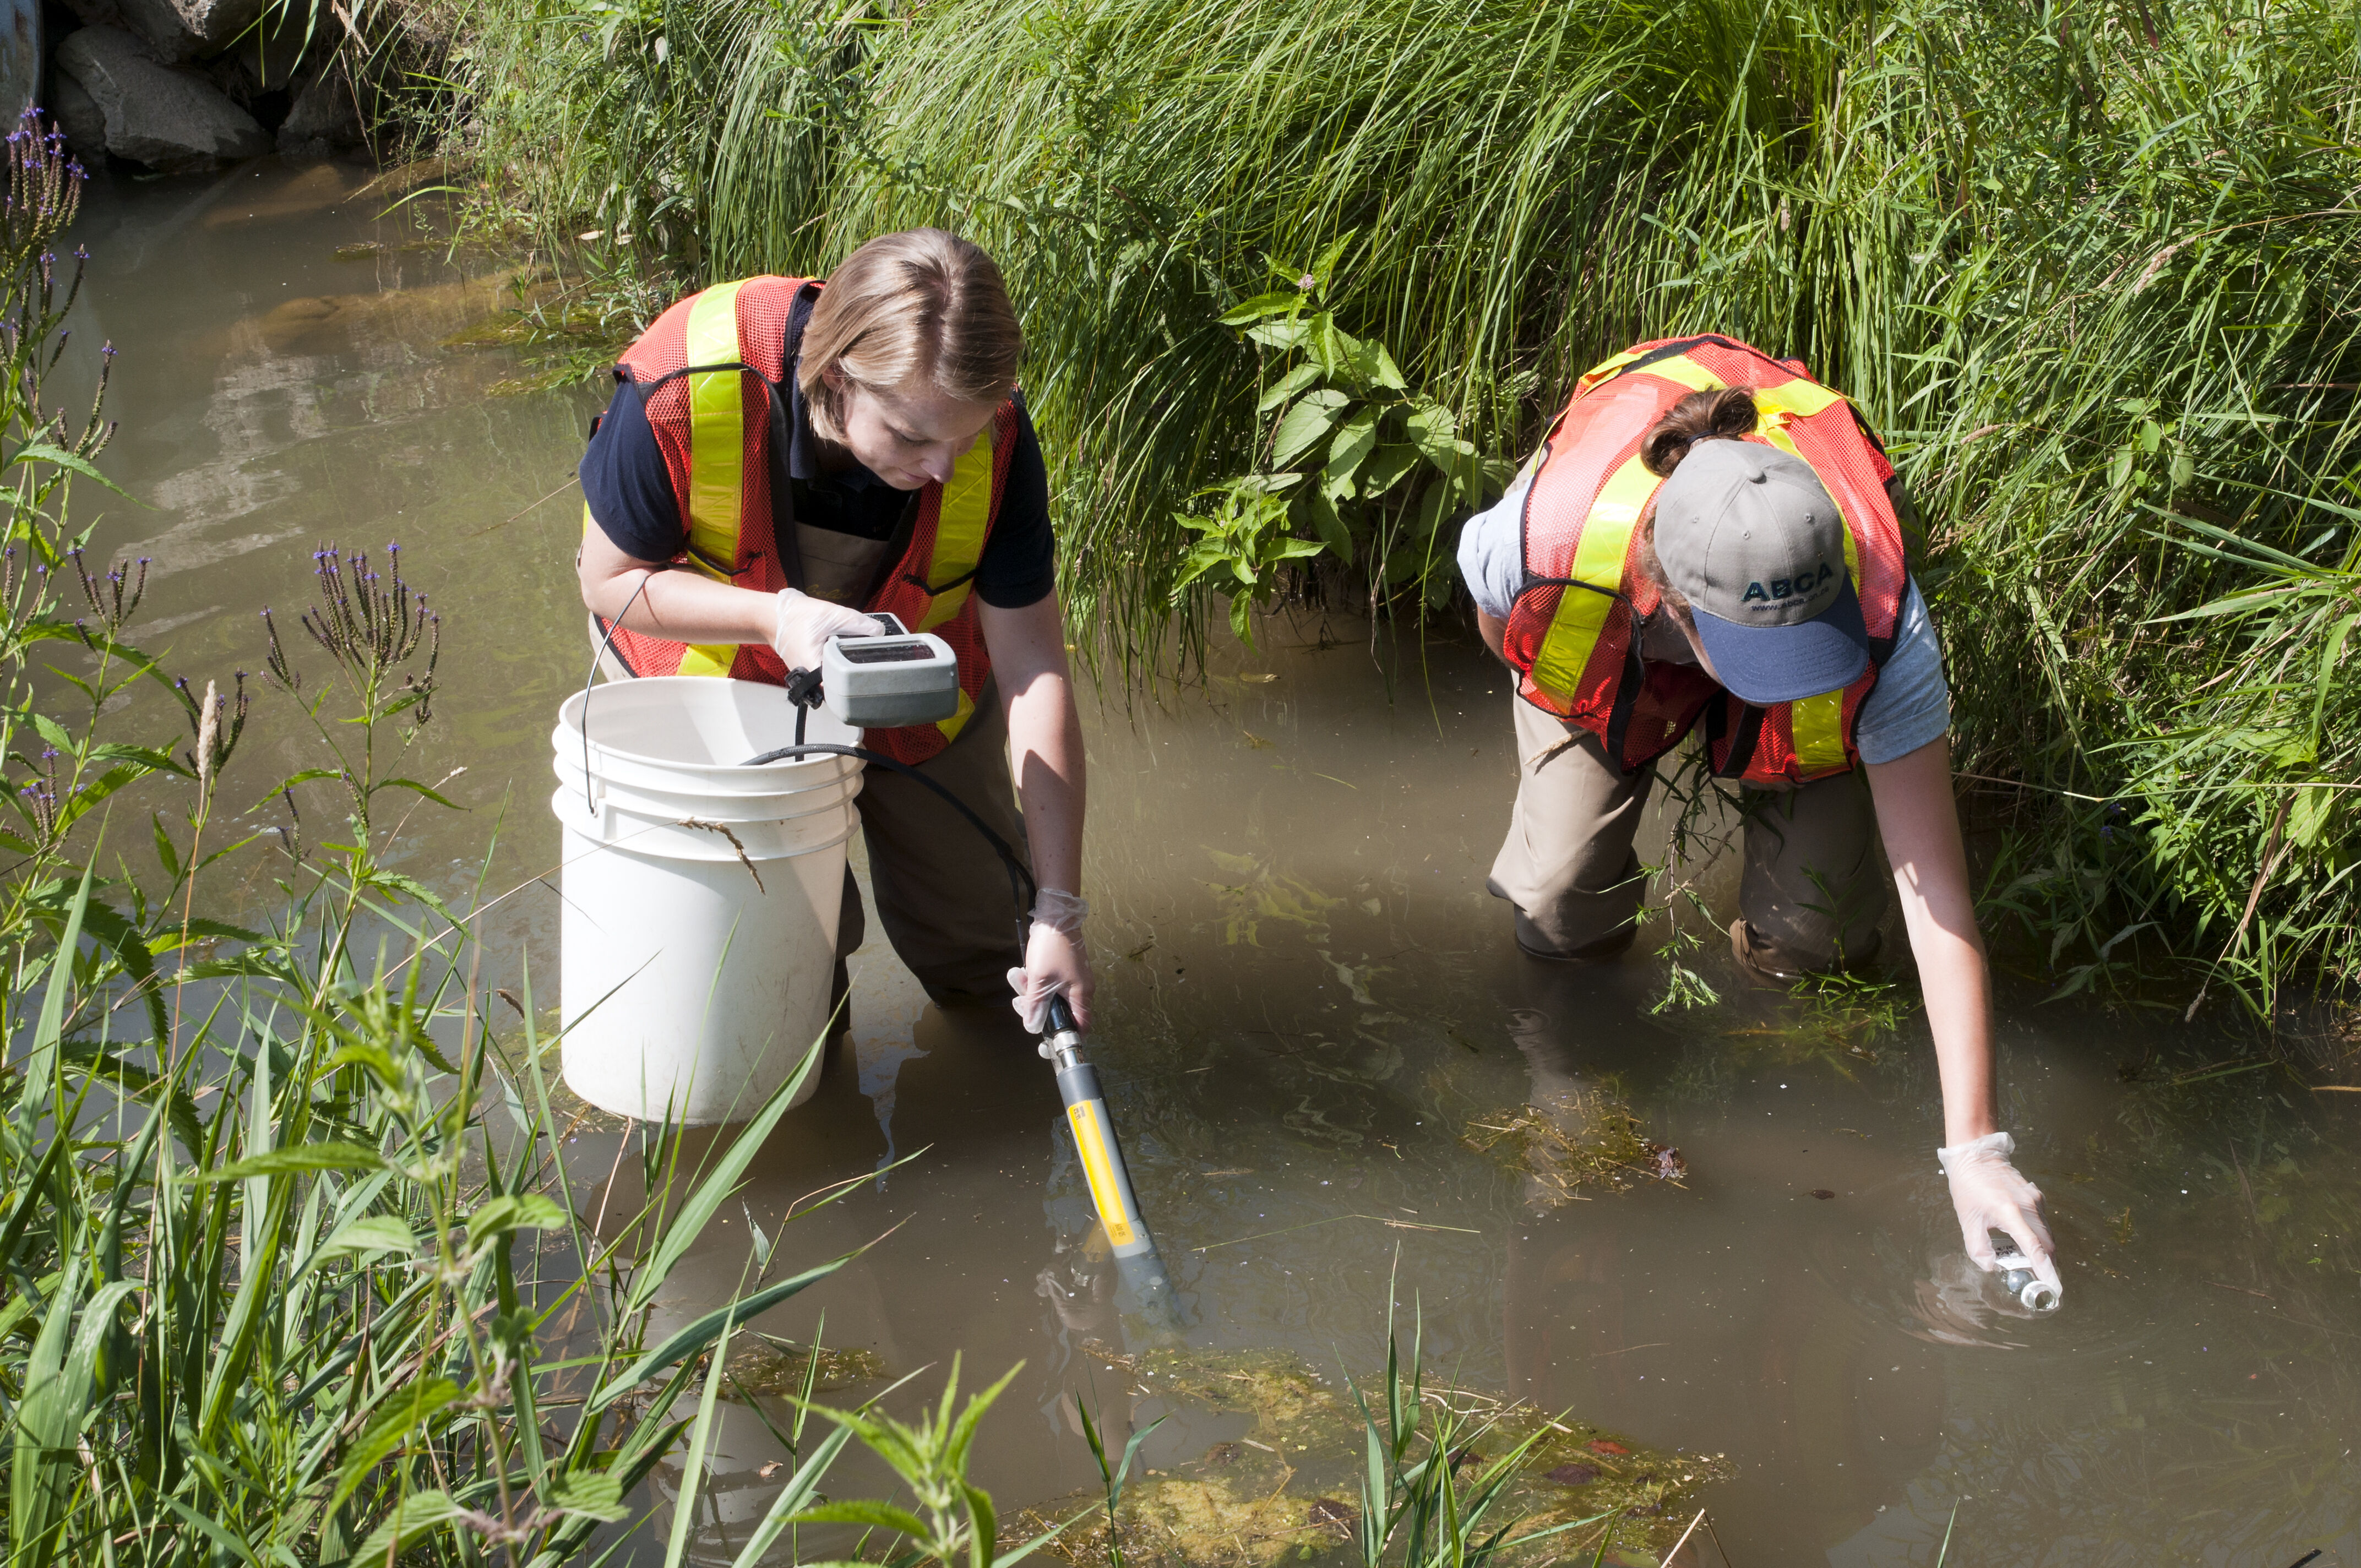 Conservation Authorities monitor the health of natural resources in their watershed